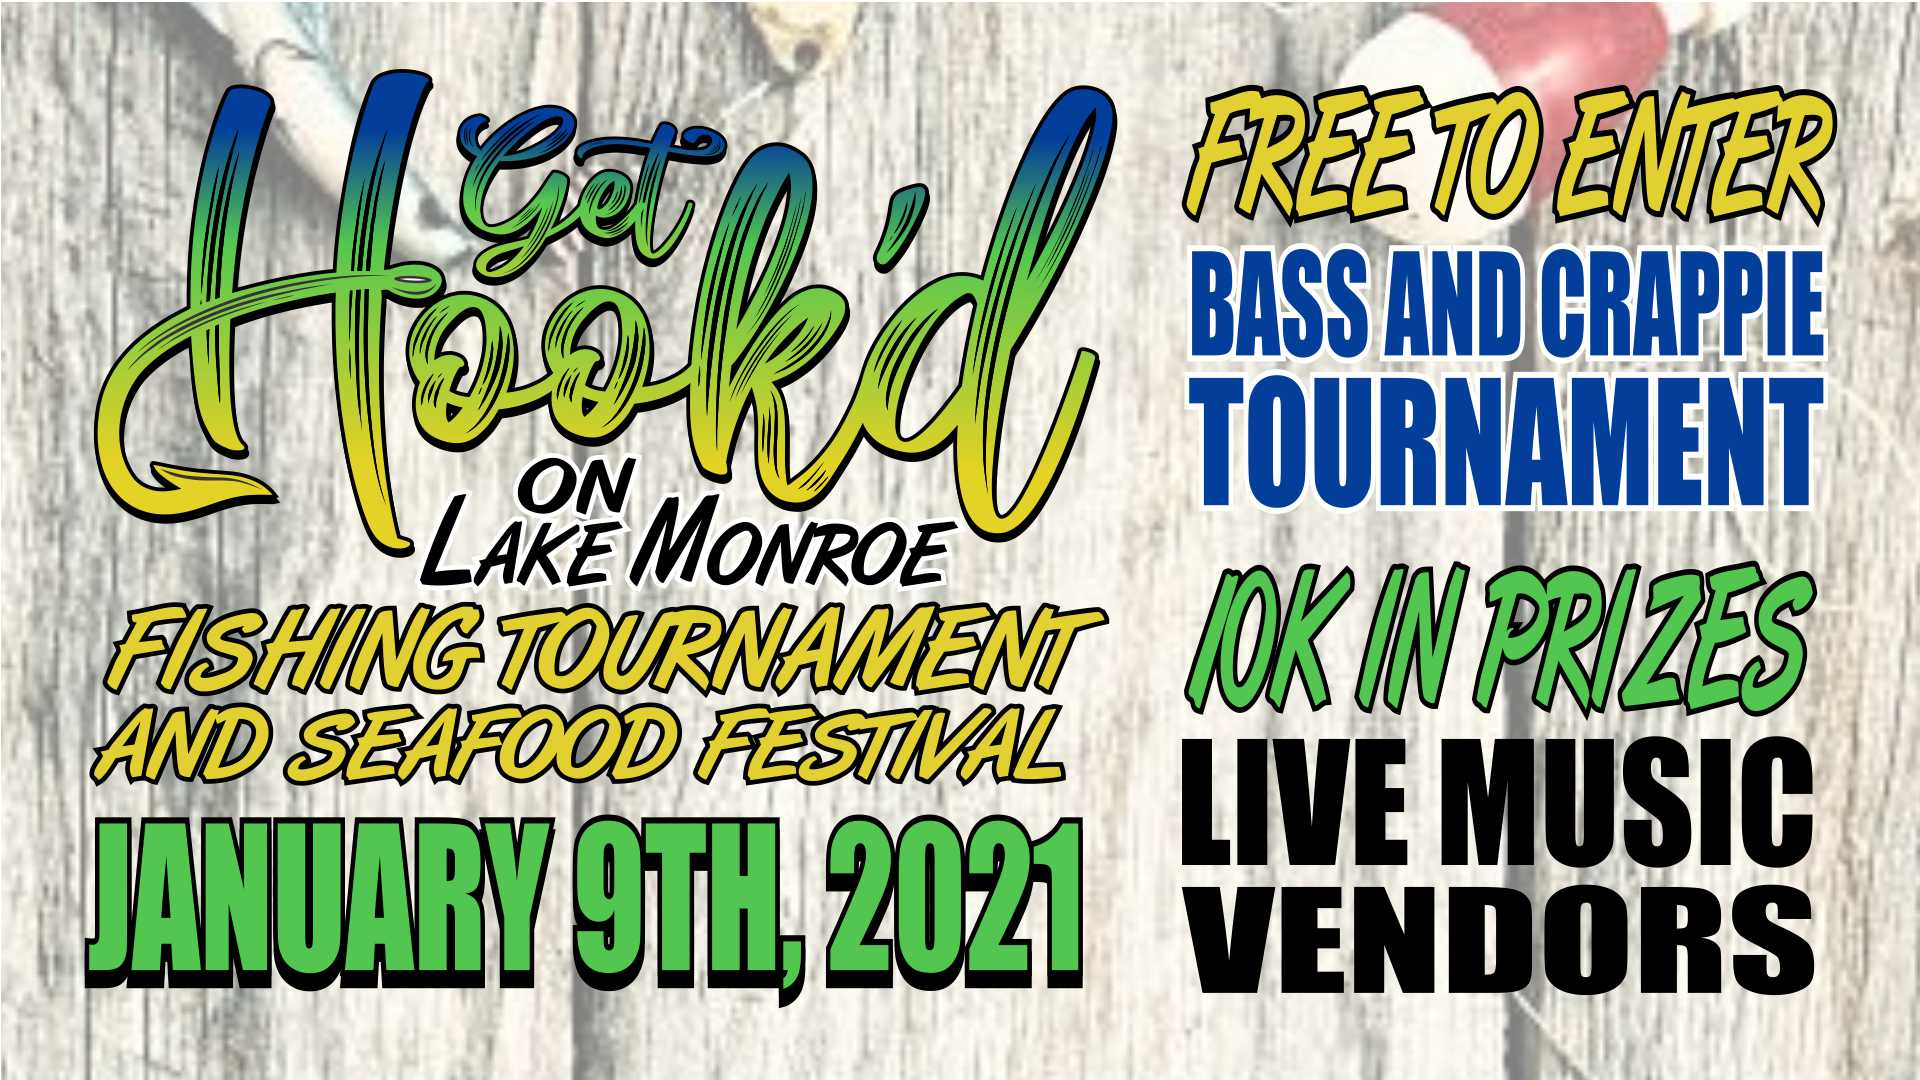 Get Hook'd Fishing Tournament & Seafood Festival